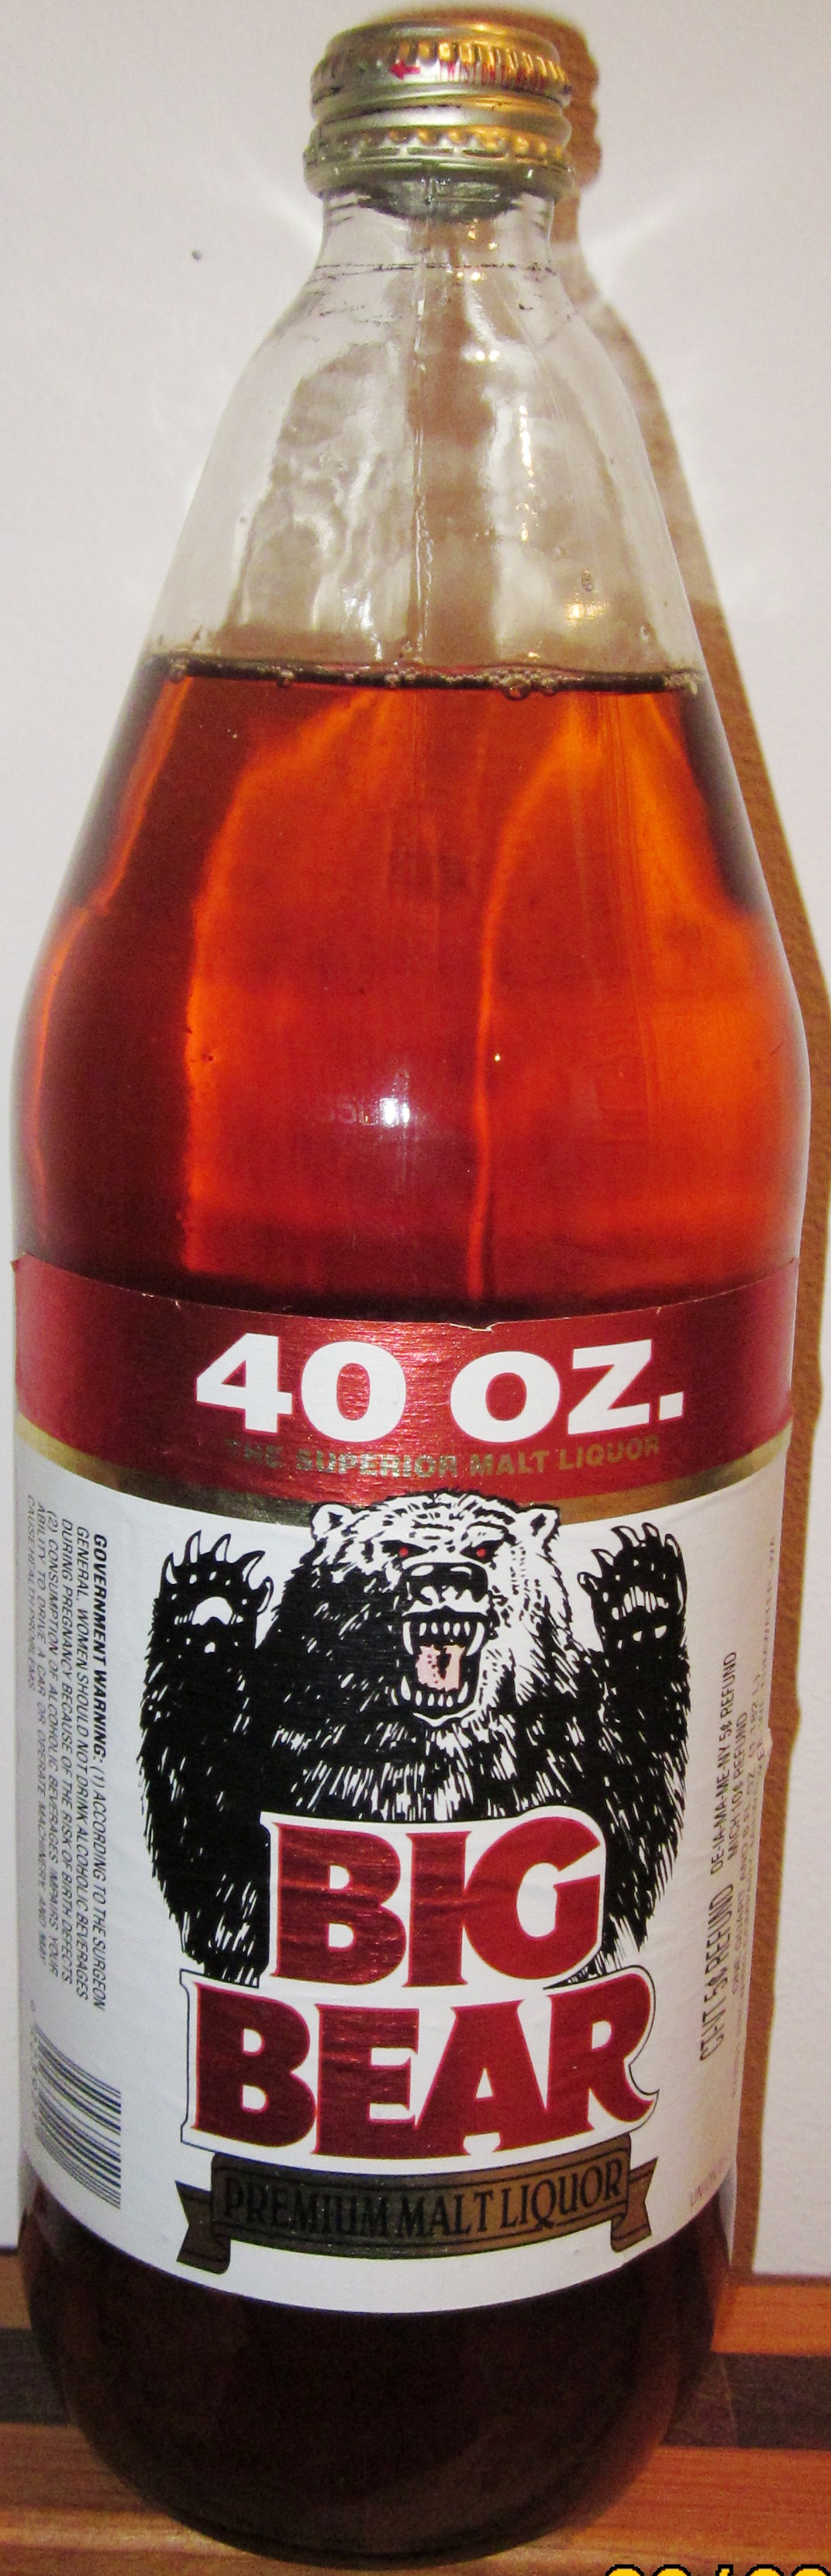 Pin By Keith Abt On Beers Wines And Liquors Malt Wines Liquor